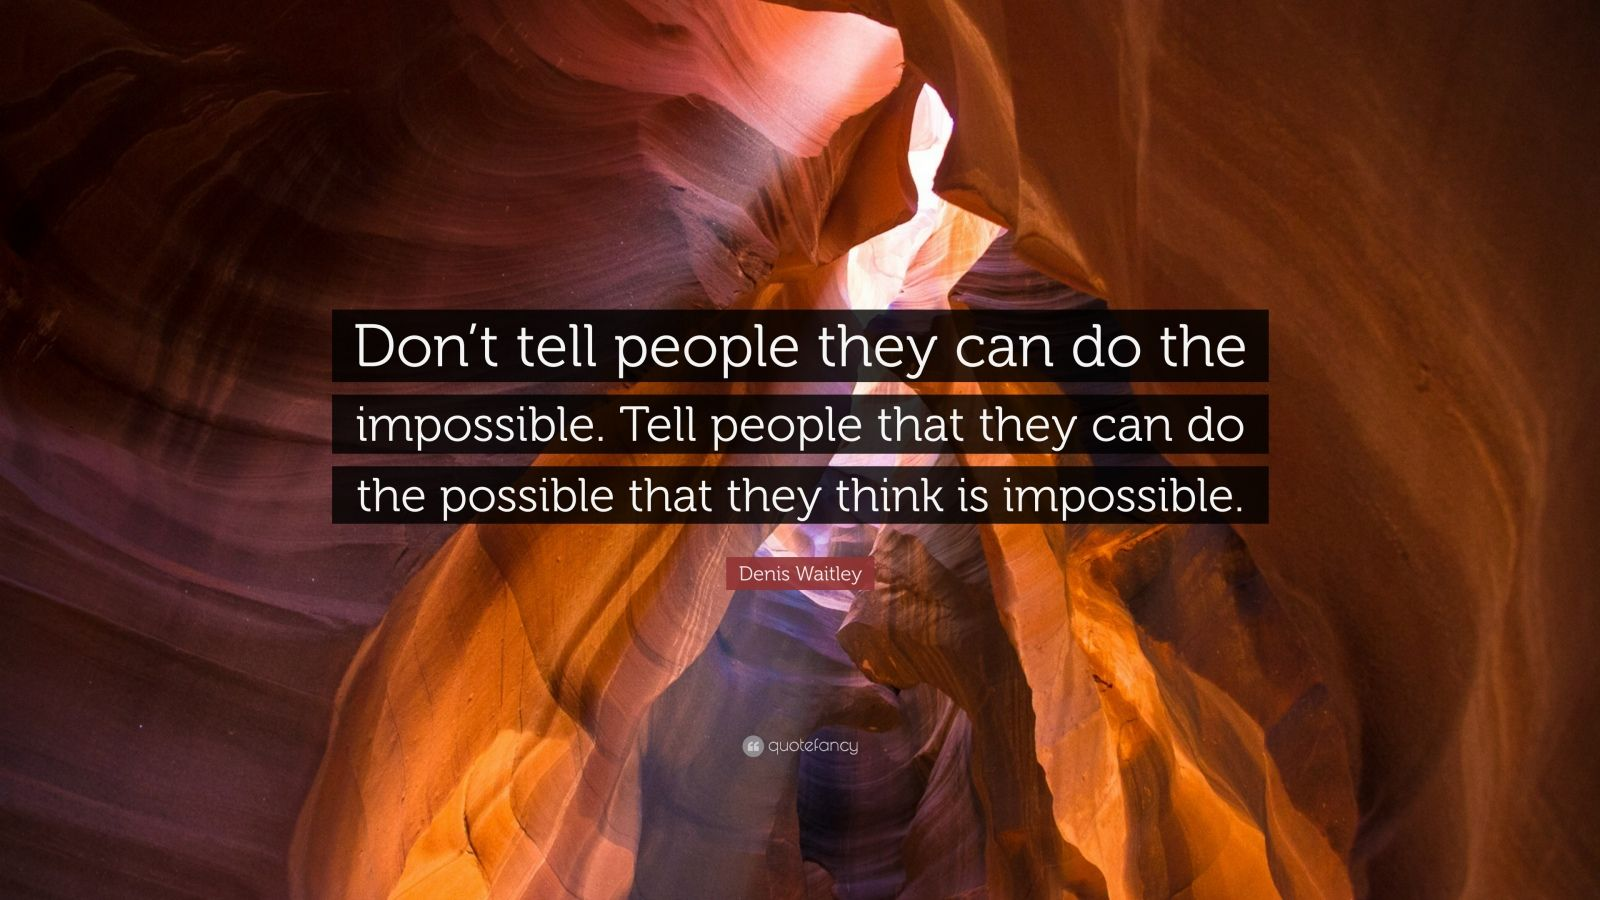 """Denis Waitley Quote: """"Don't tell people they can do the impossible. Tell people that they can do the possible that they think is impossible."""""""